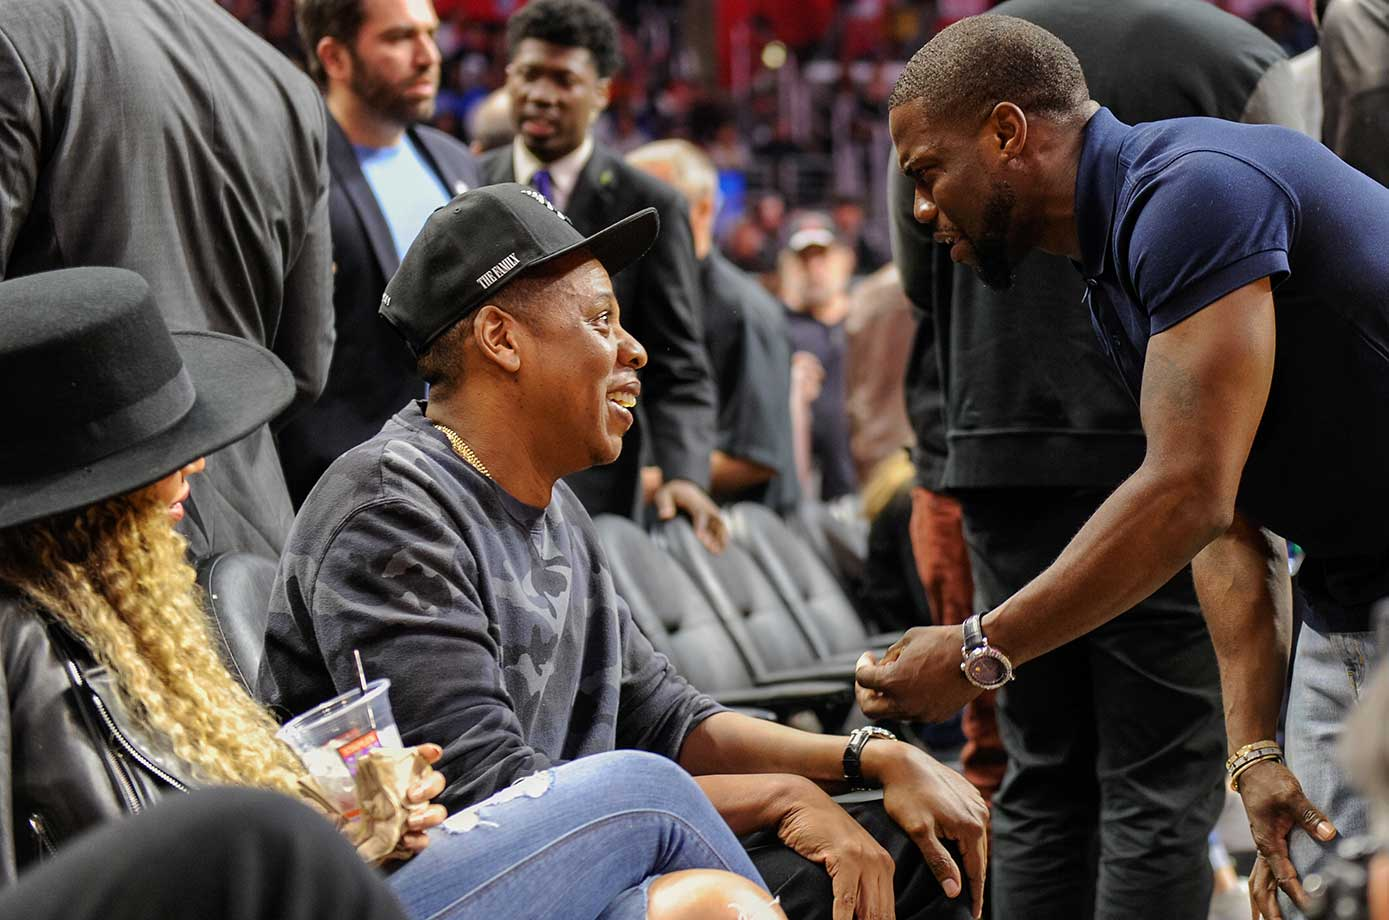 Beyonce, Jay-Z and Kevin Hart at the L.A. Clippers-Oklahoma City Thunder game at Staples Center.